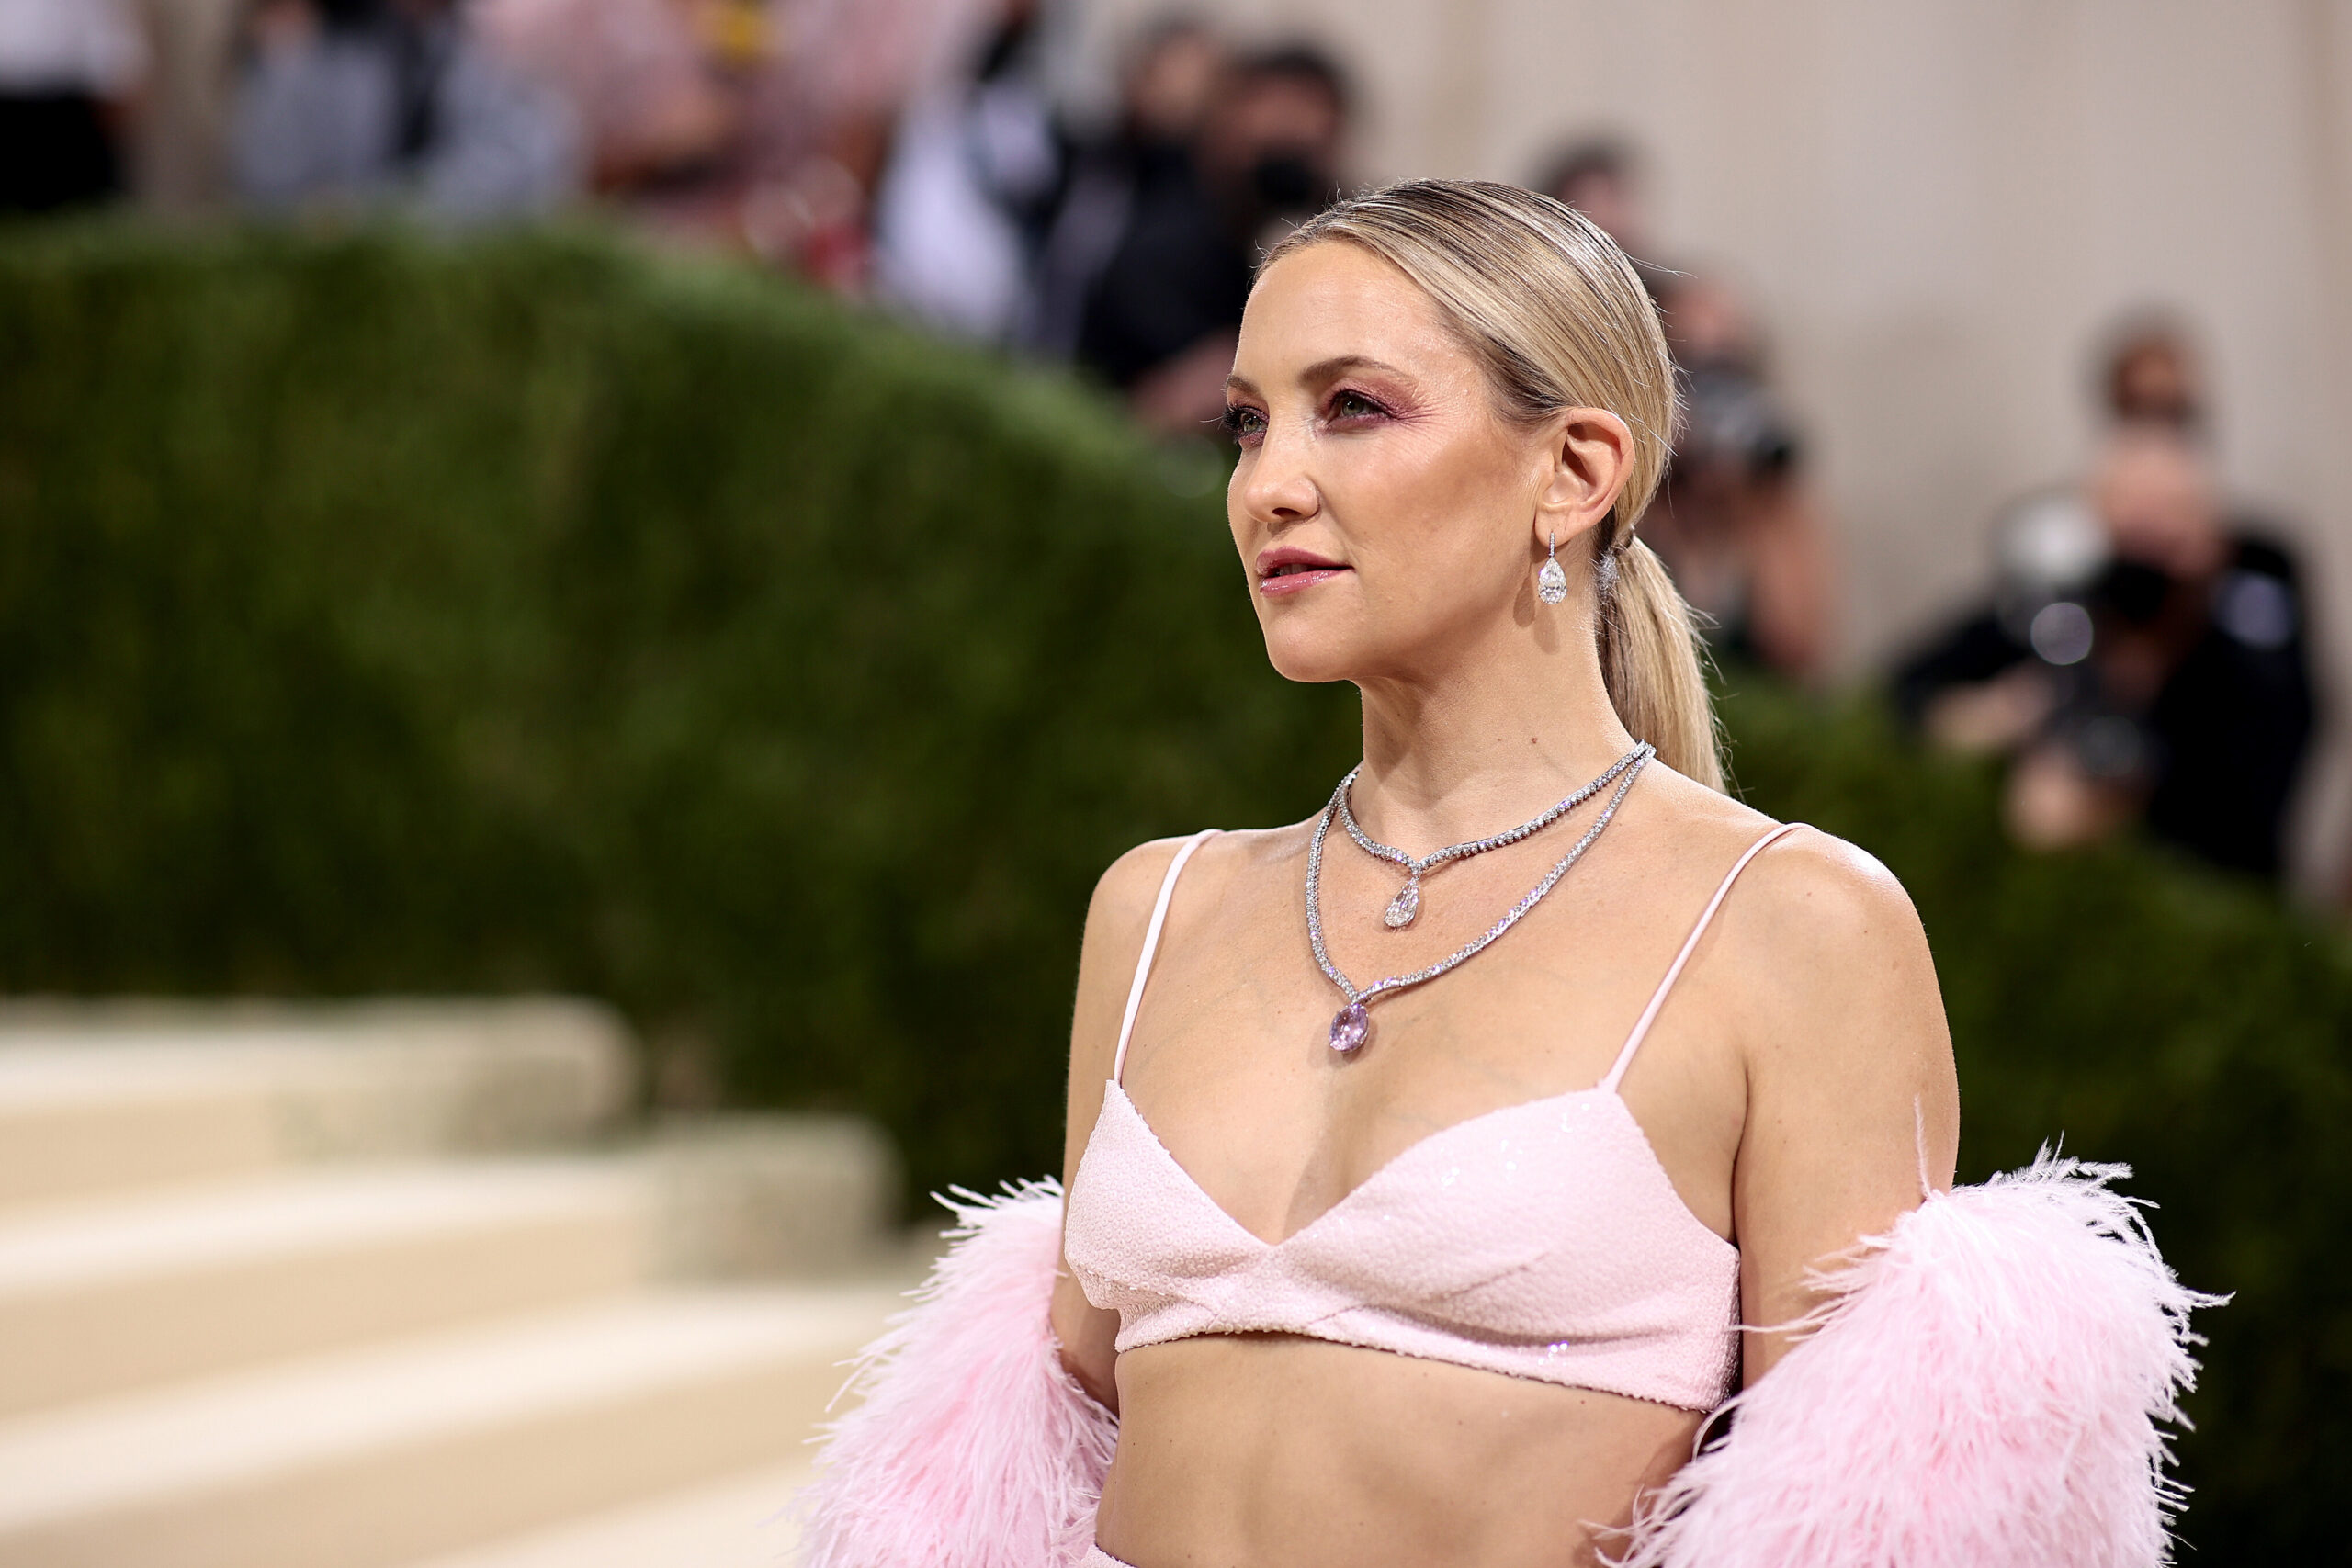 <i>Dimitrios Kambouris/Getty Images</i><br/>Kate Hudson is engaged to long-term boyfriend Danny Fujikawa. Hudson here attends the 2021 Met Gala in New York City